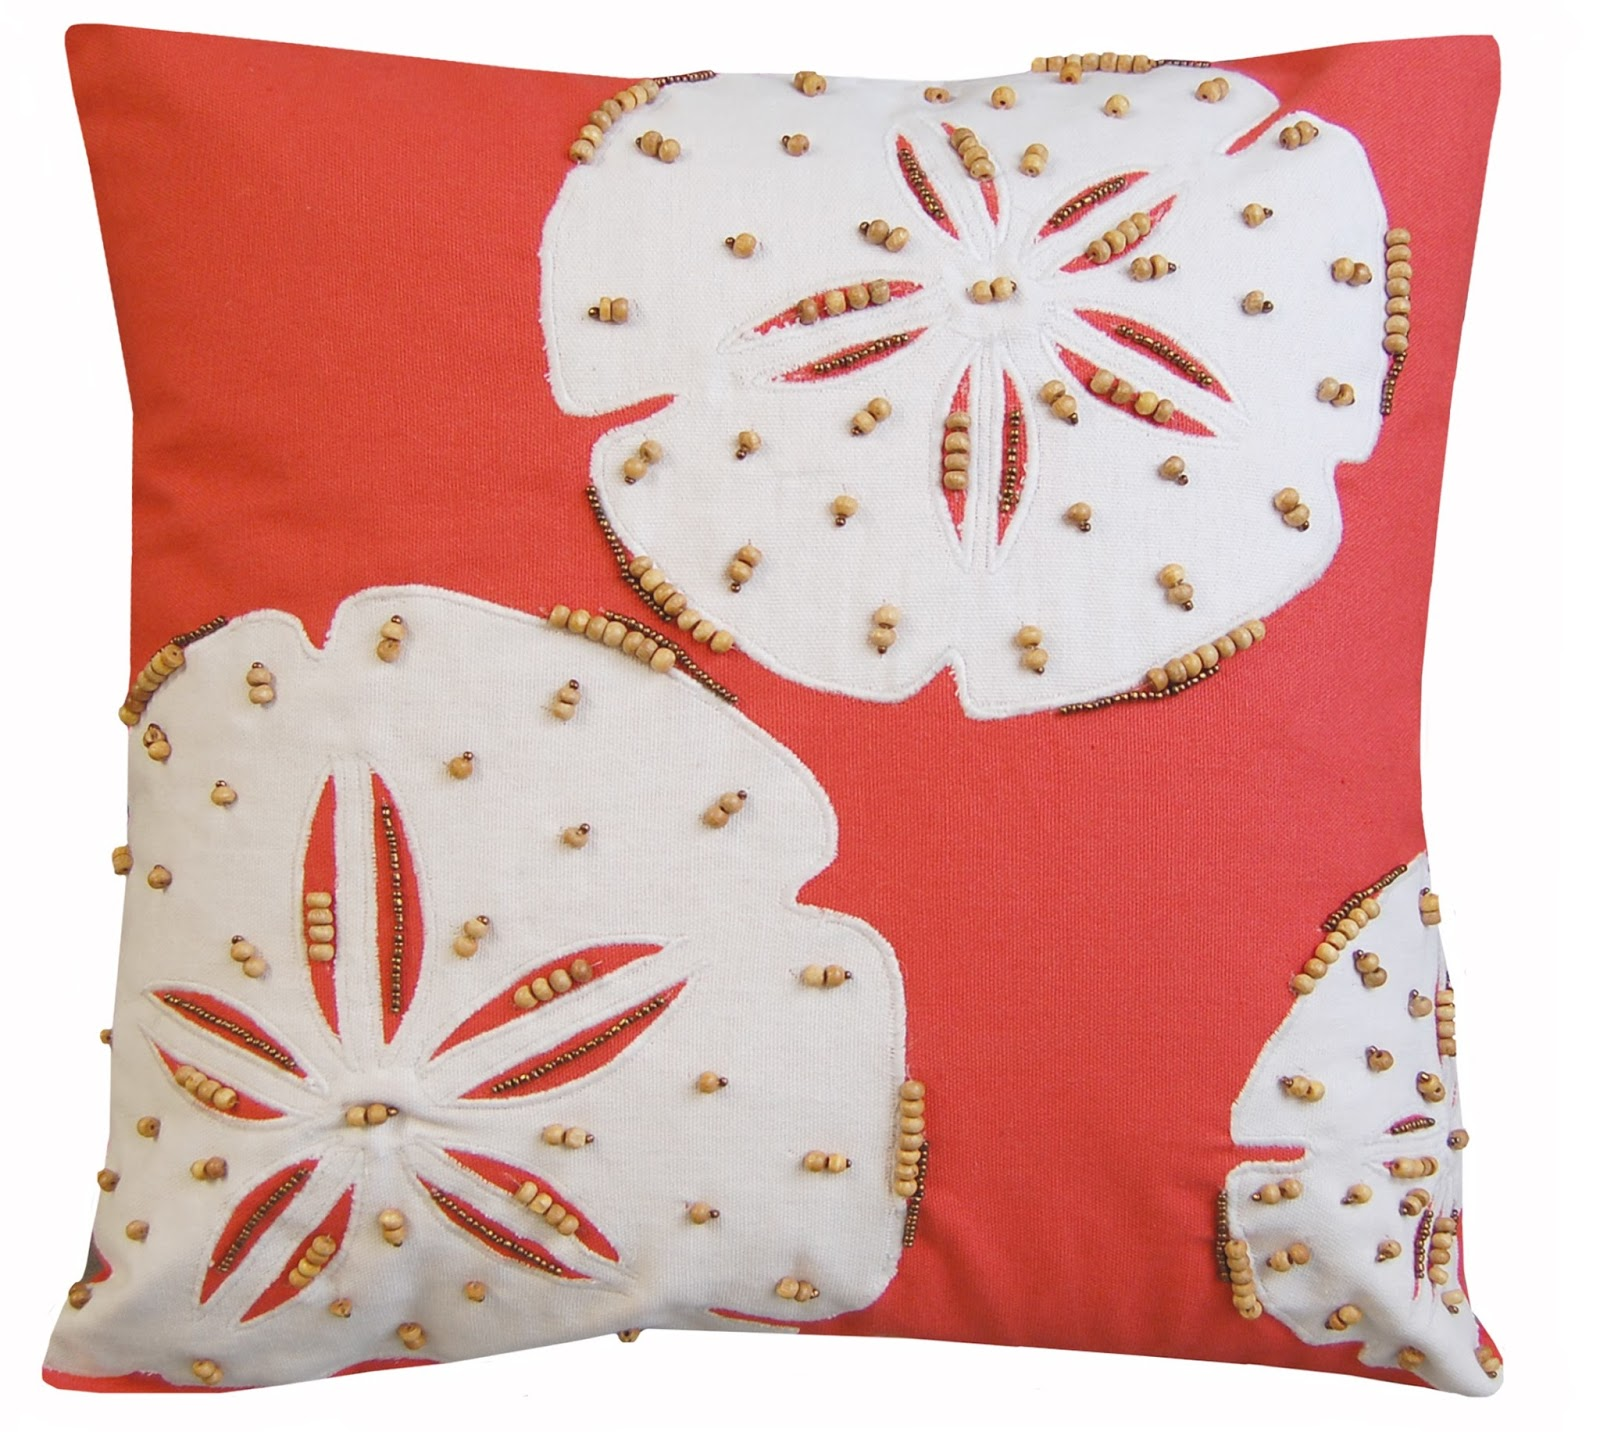 pillows love coral decor meets navyhome of pillow navy home family and